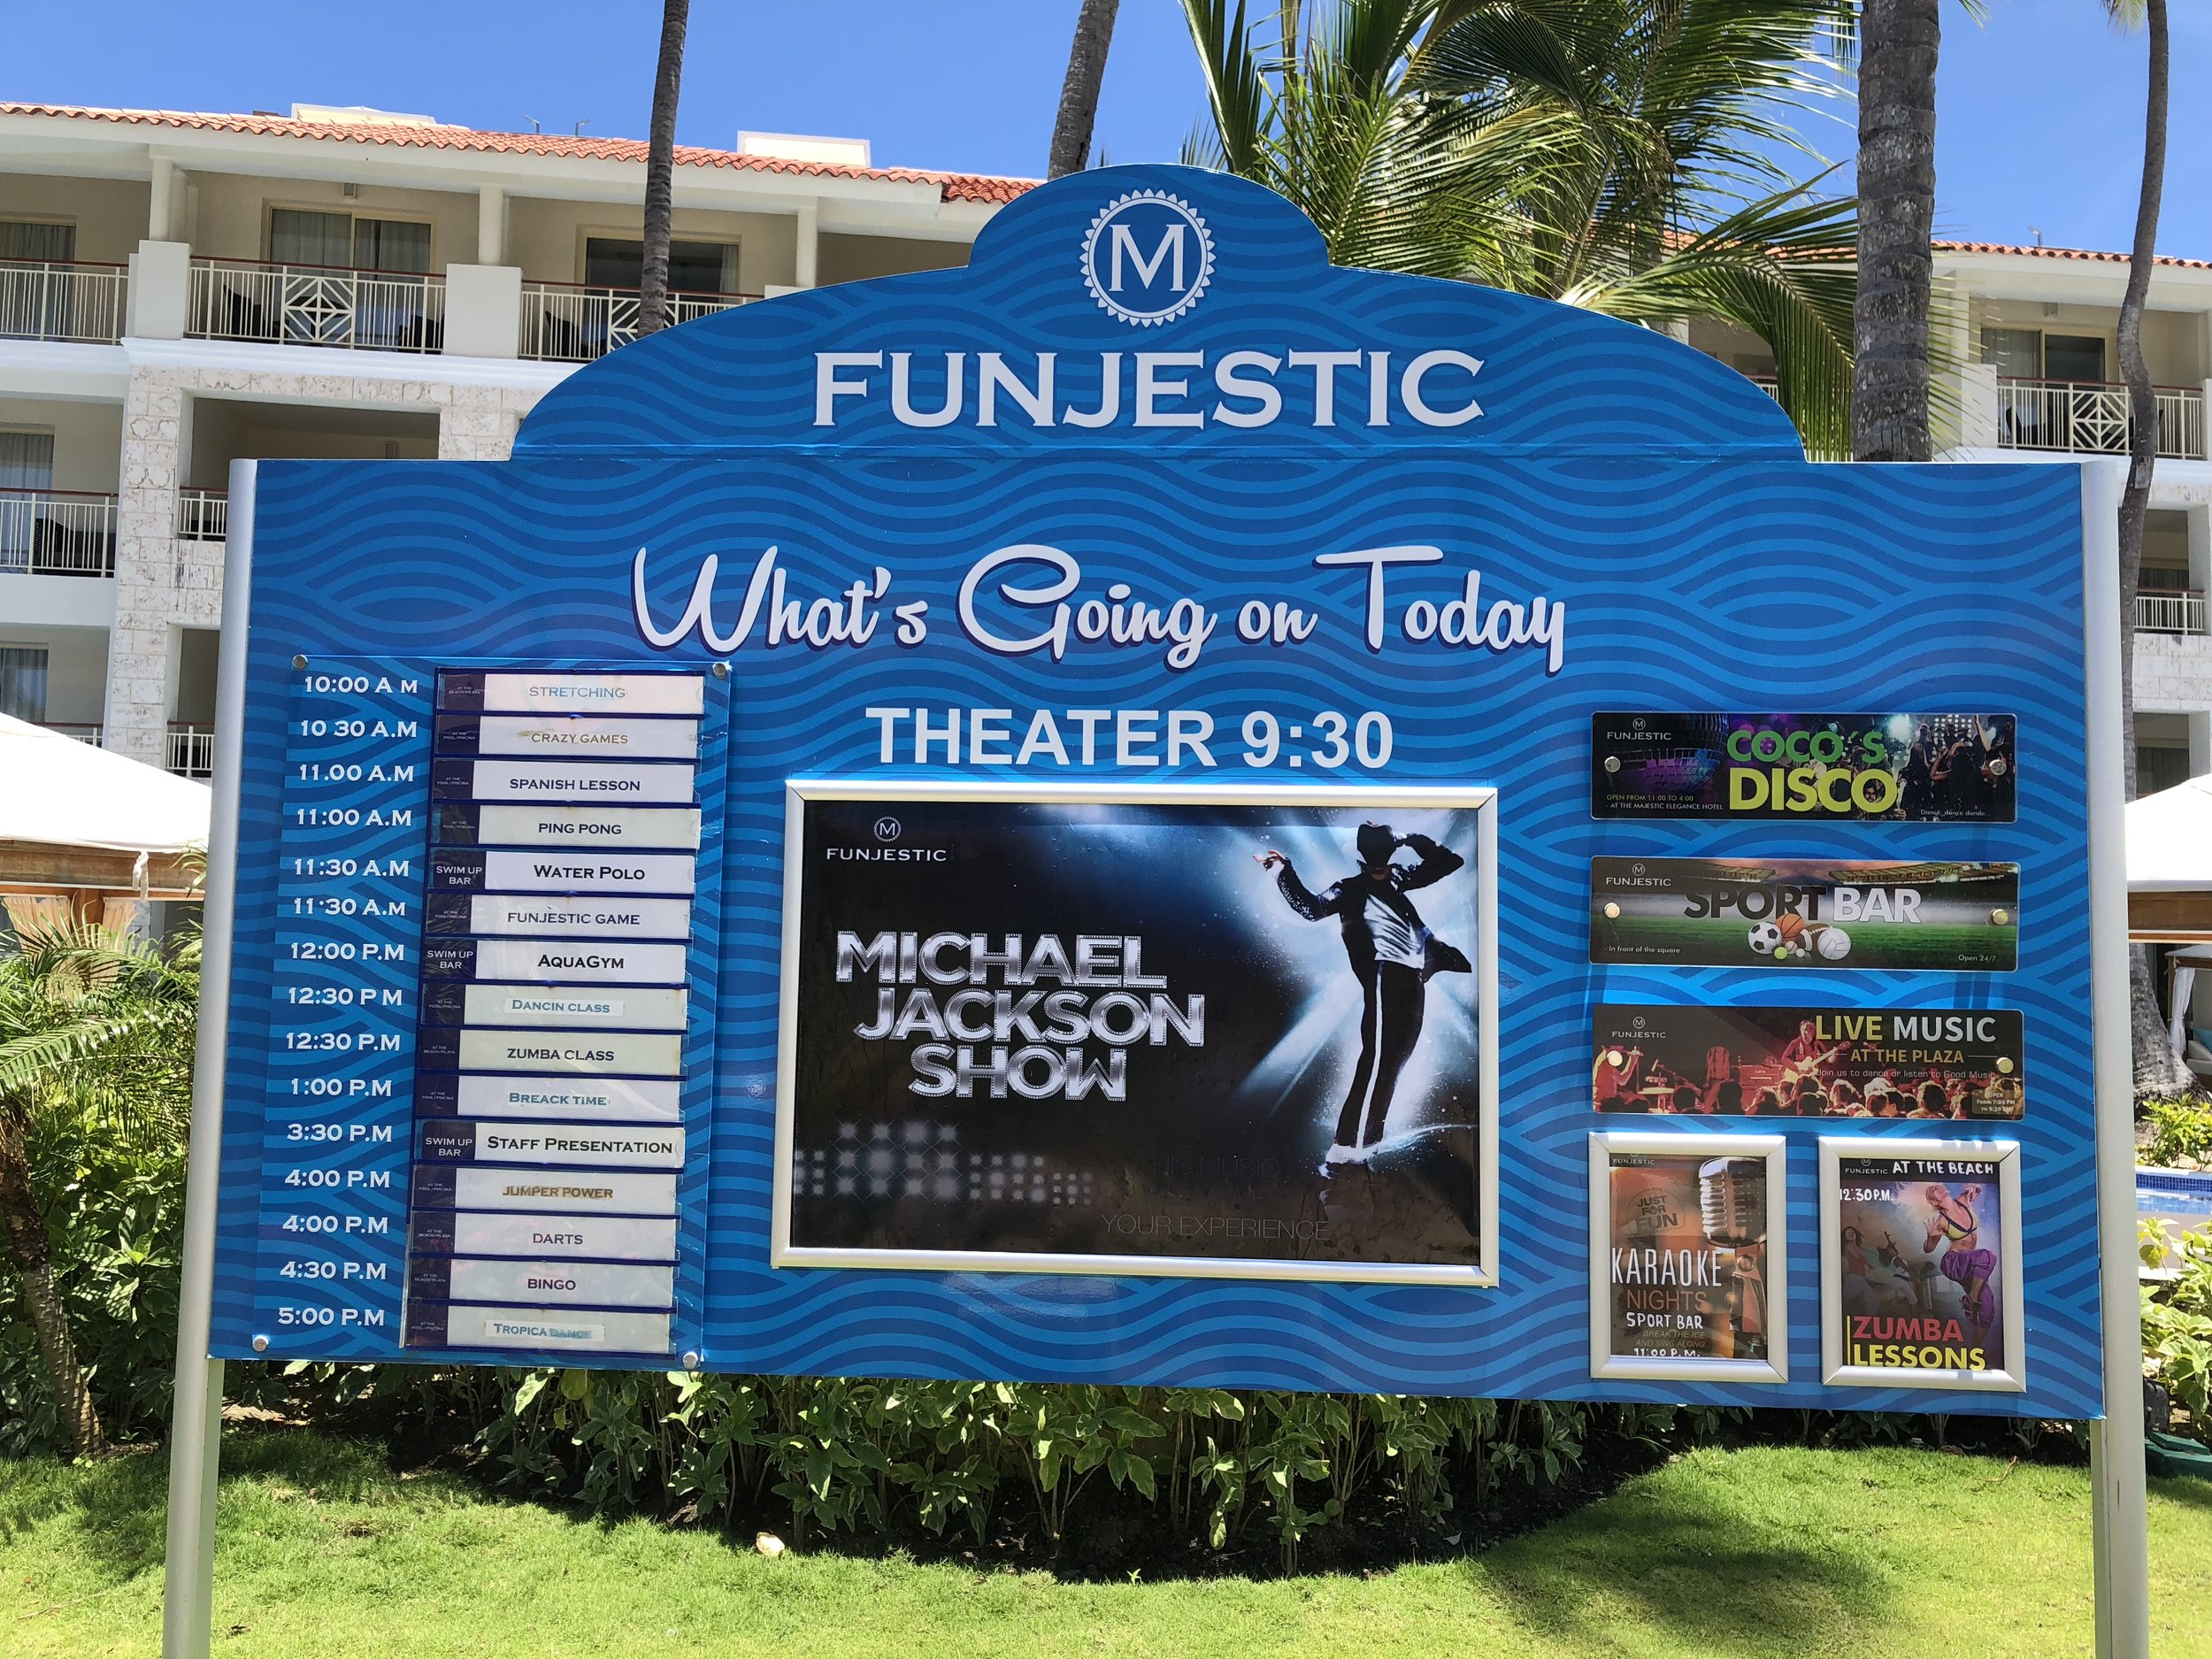 Funjestic board tells you what shows are on for the day.